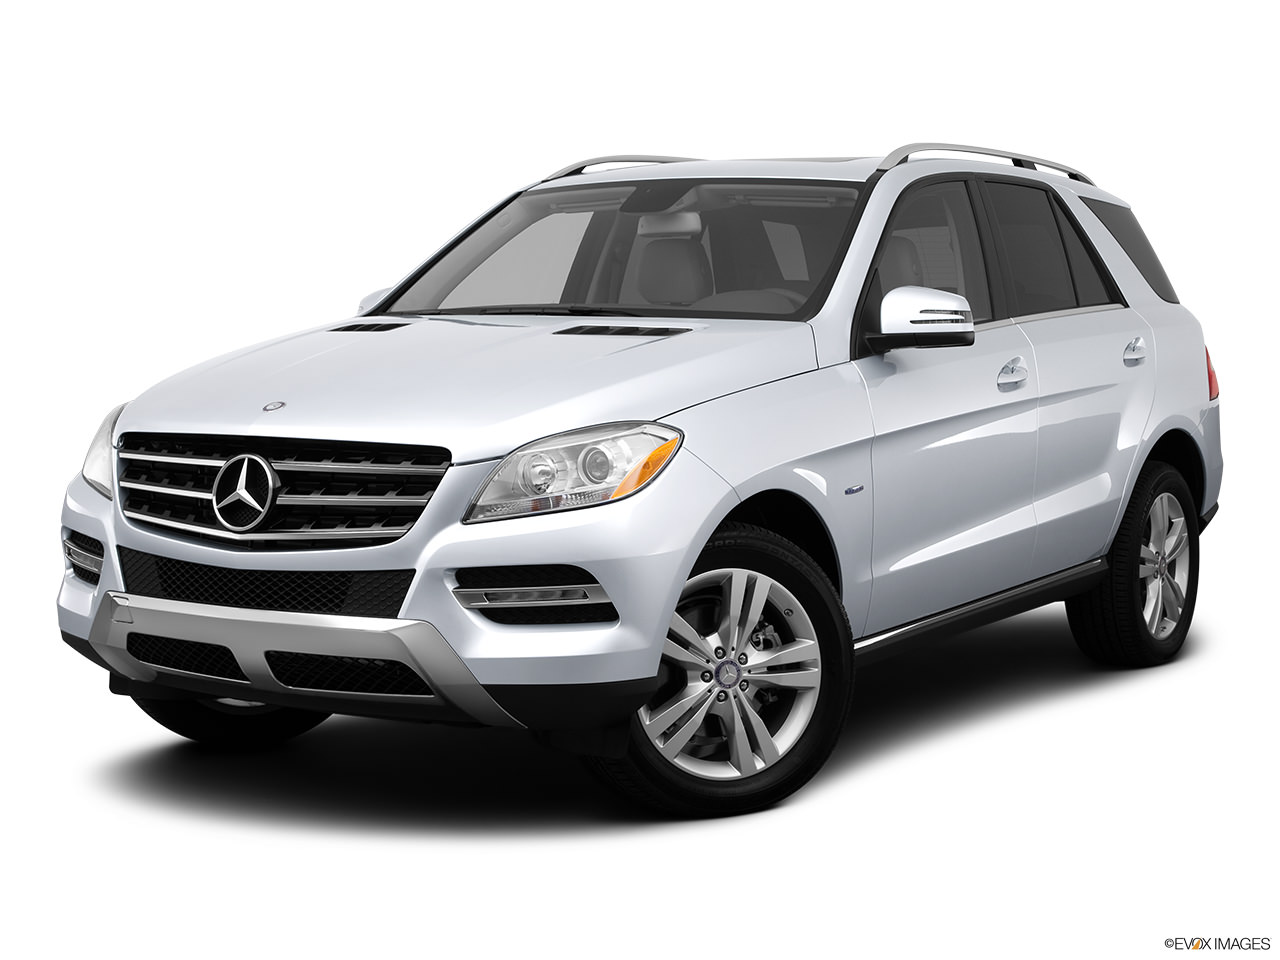 a buyer's guide to the 2012 mercedes-benz ml350 bluetec